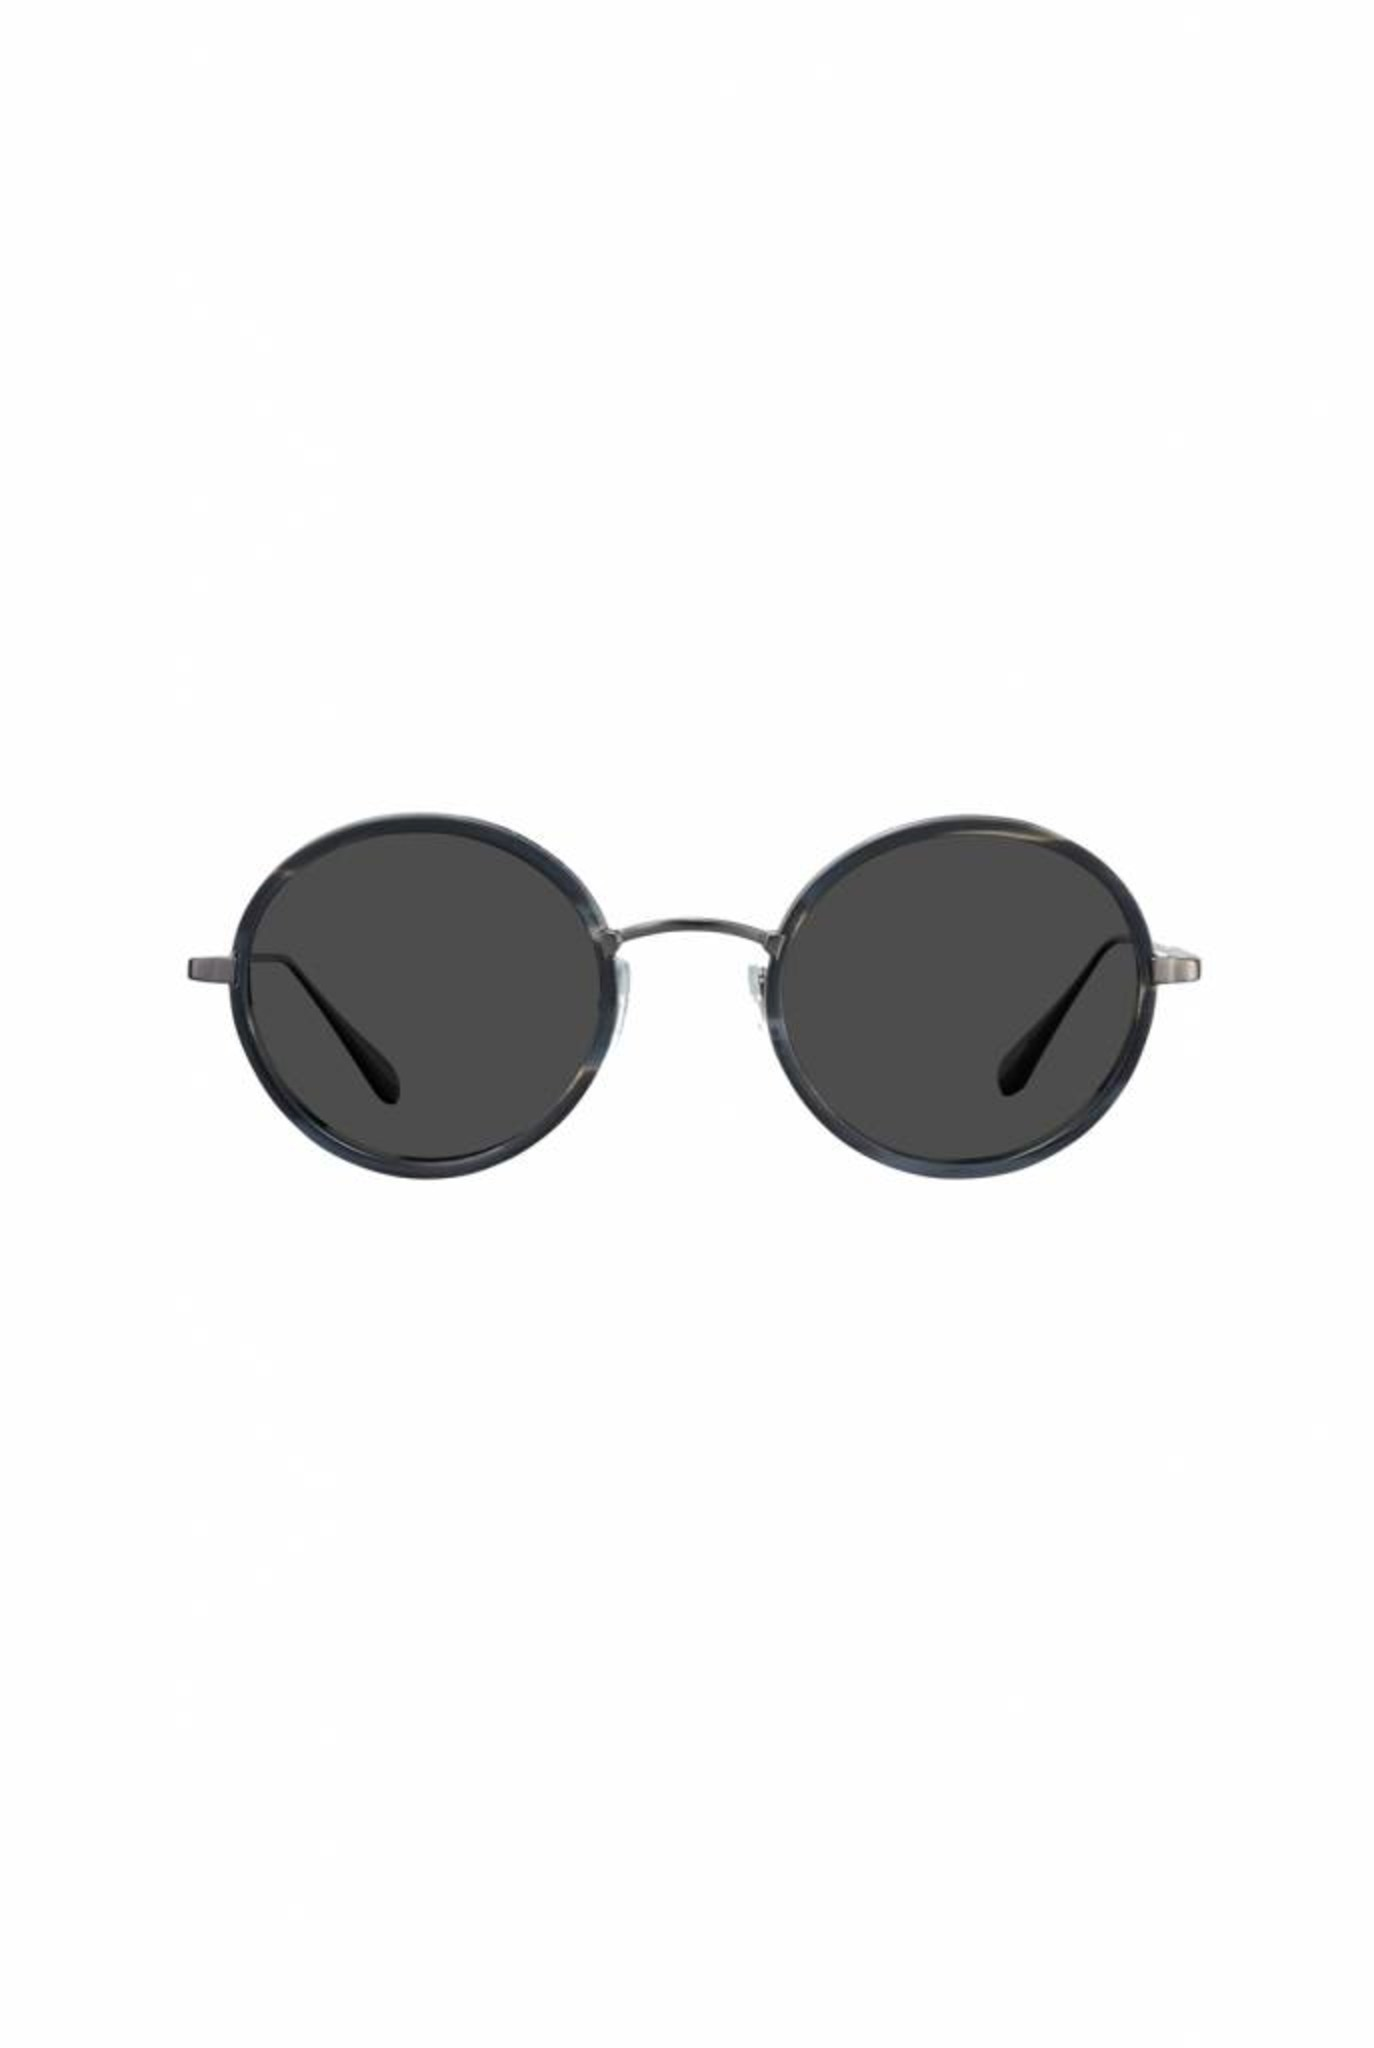 Playa sunglasses Basalt-Gunmetal/Semi-Flat Black